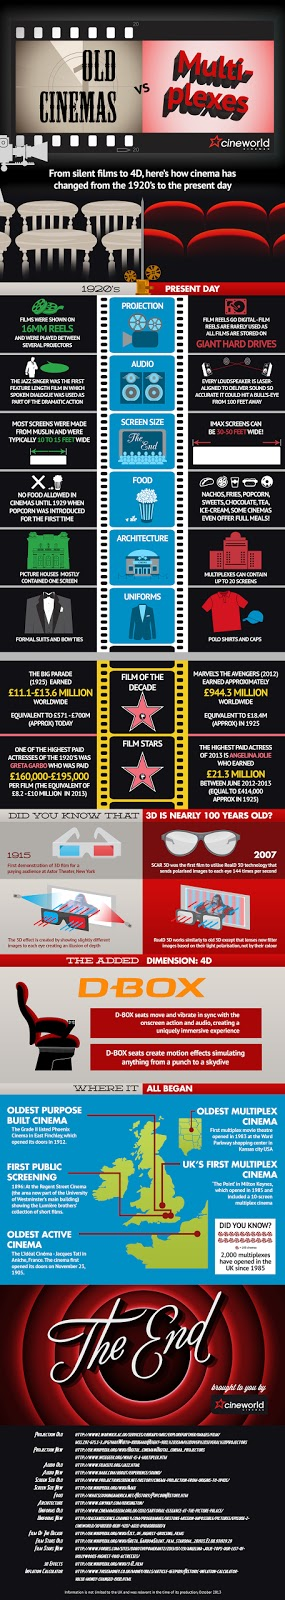 Cineworld Infographic old Cinemas vs New Cinemas